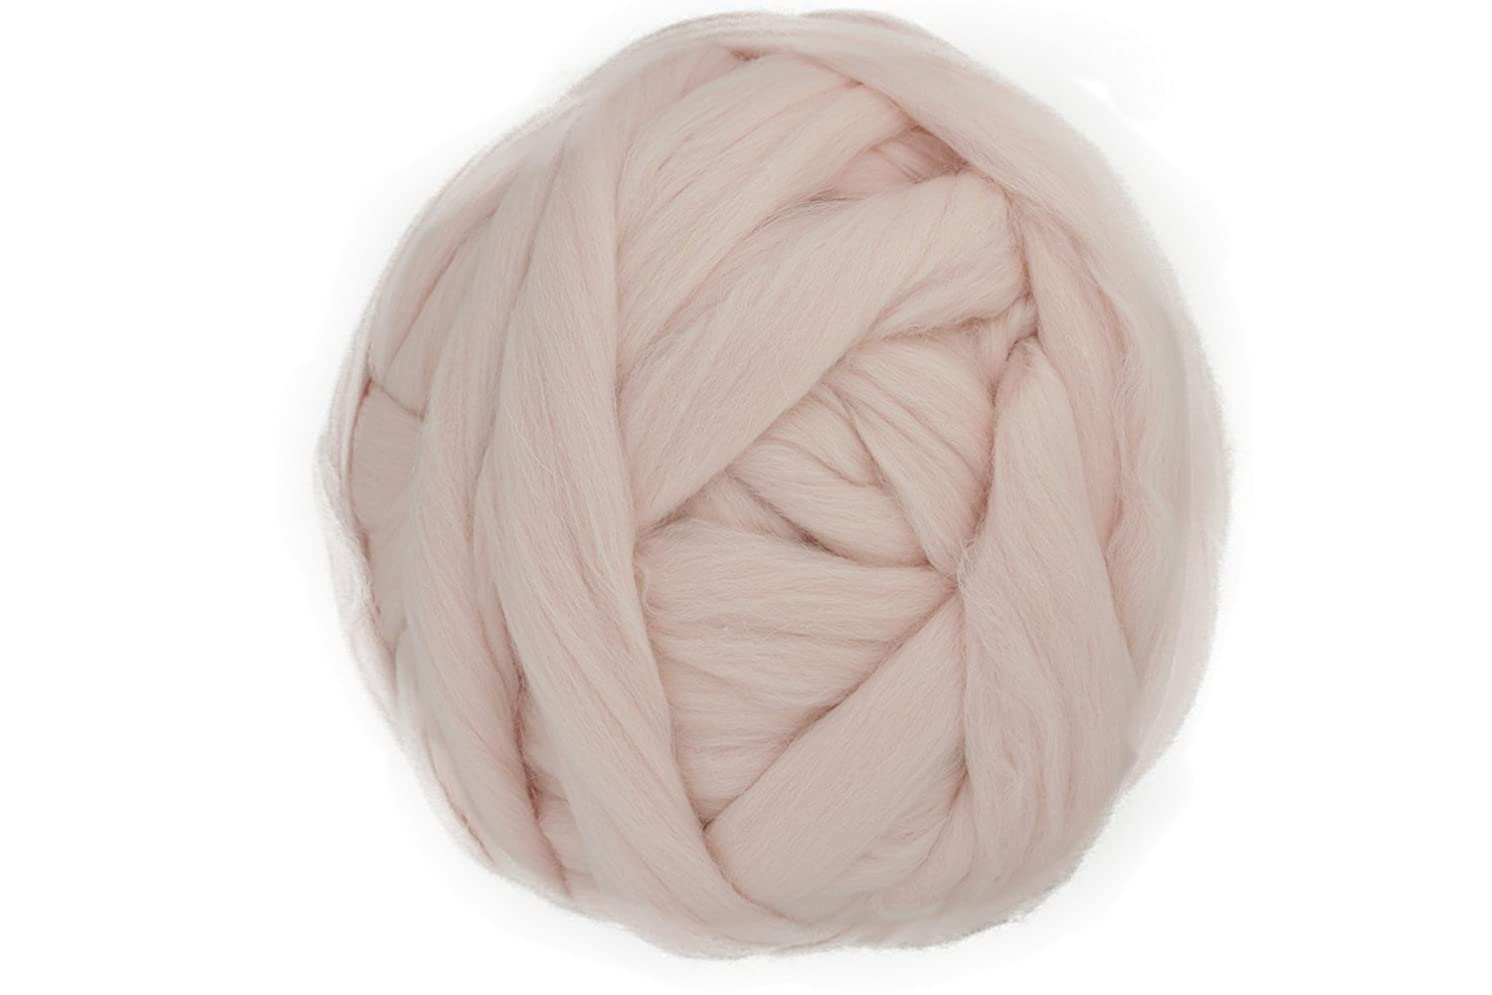 Charmkey Natural Soft Super Fatty Chunky Giant Blanket 100% Australian Merino Wool Tops Extreme Arm Knitting Roving Yarn Silk Fiber Spinning for Mega Pillow Cushion, 35 oz/ 2.2 Lb (Blushing Bride)